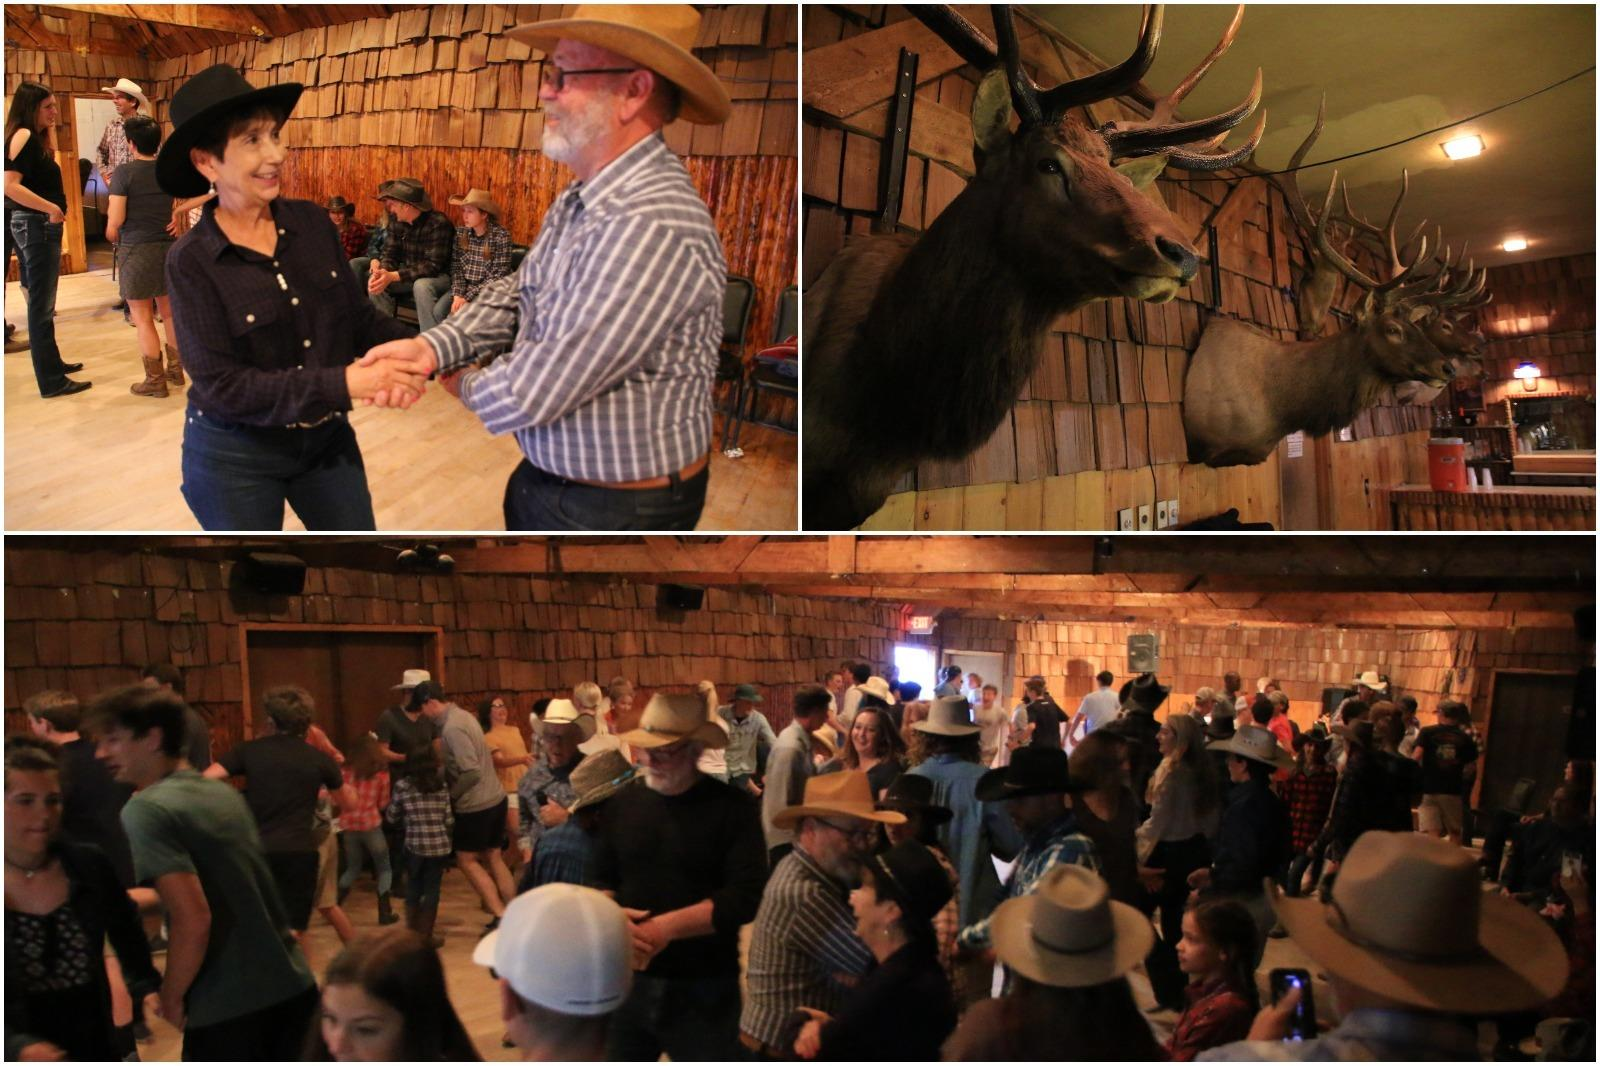 Square dancing in Dubois, one of the many things to do in Wyoming.